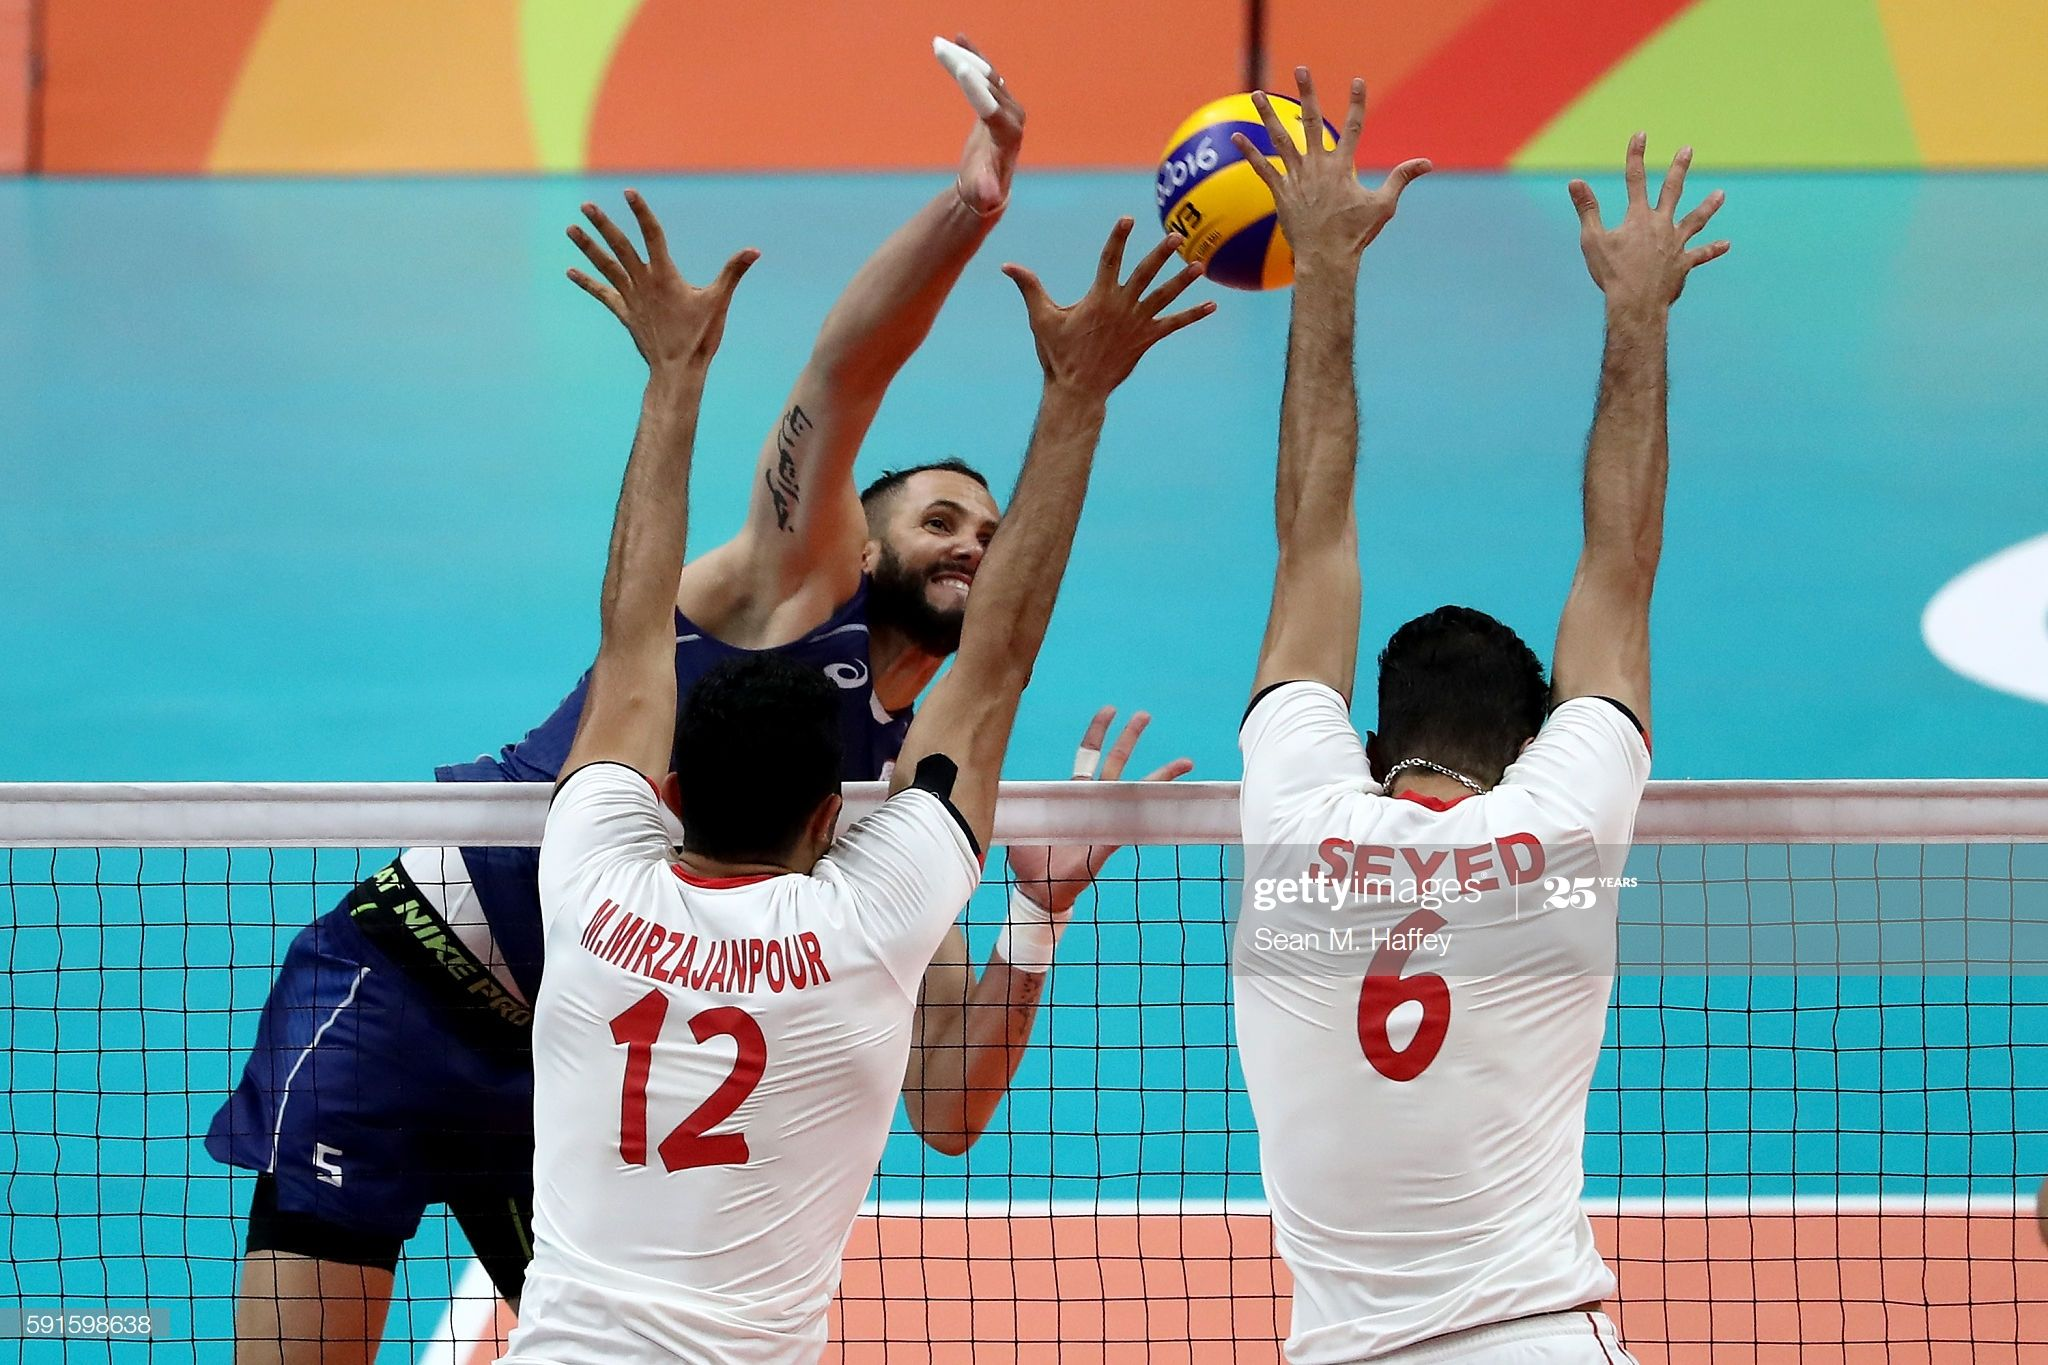 M Mojtaba Mirzajanpour And Seyed Mohammad Mousavi Eraghi Of Iran In 2020 Rio Olympics 2016 2016 Olympic Games Olympics 2016